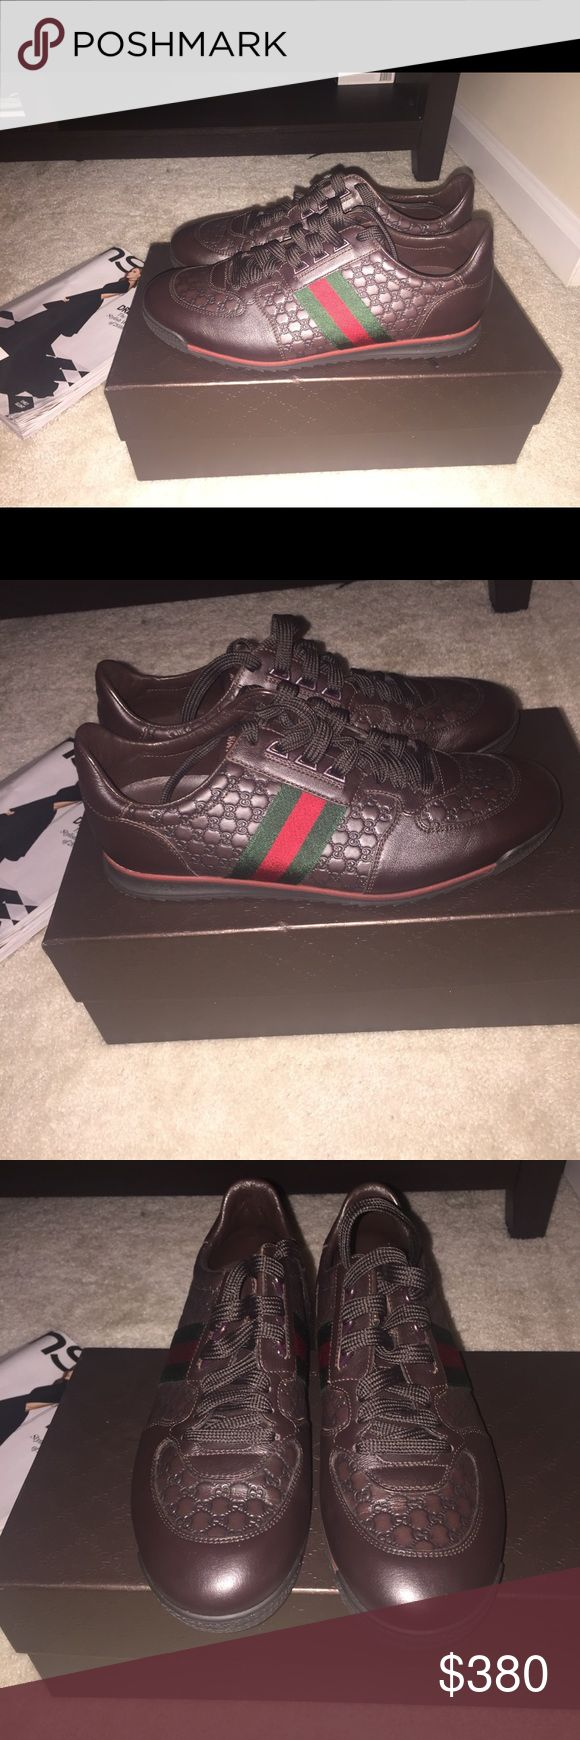 Mens Gucci Sneakers Pre-loved mens gucci sneaker great condition wore only once!! Gucci Shoes Sneakers